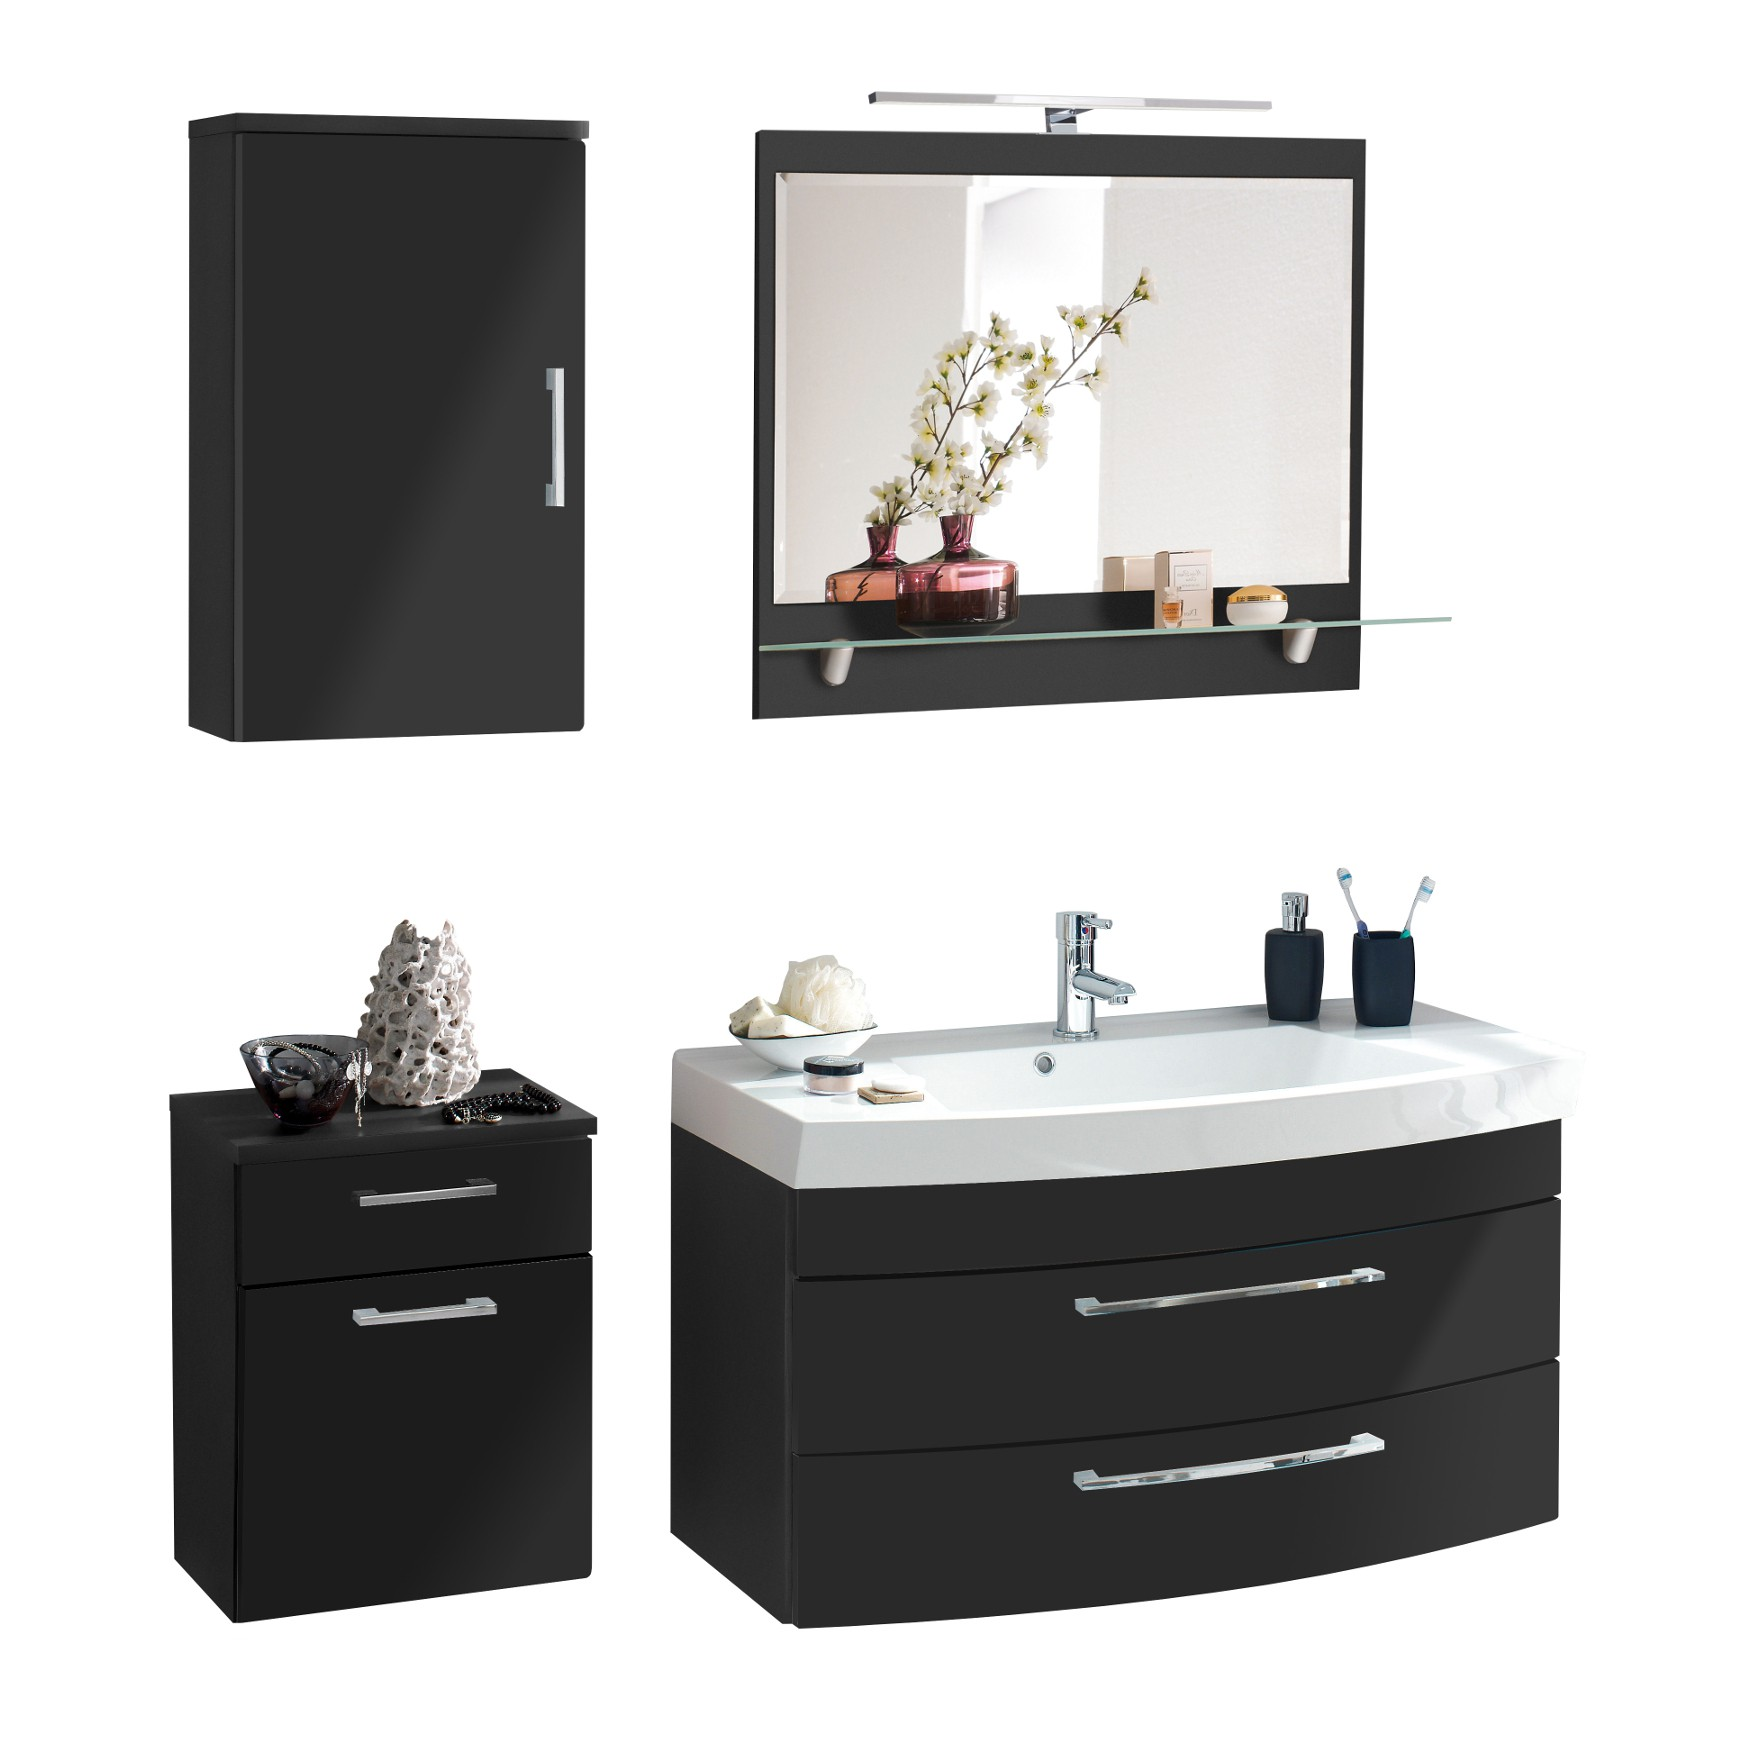 badm bel set rima mit spiegelpaneel 6 teilig 140 cm breit grau bad badm belsets. Black Bedroom Furniture Sets. Home Design Ideas